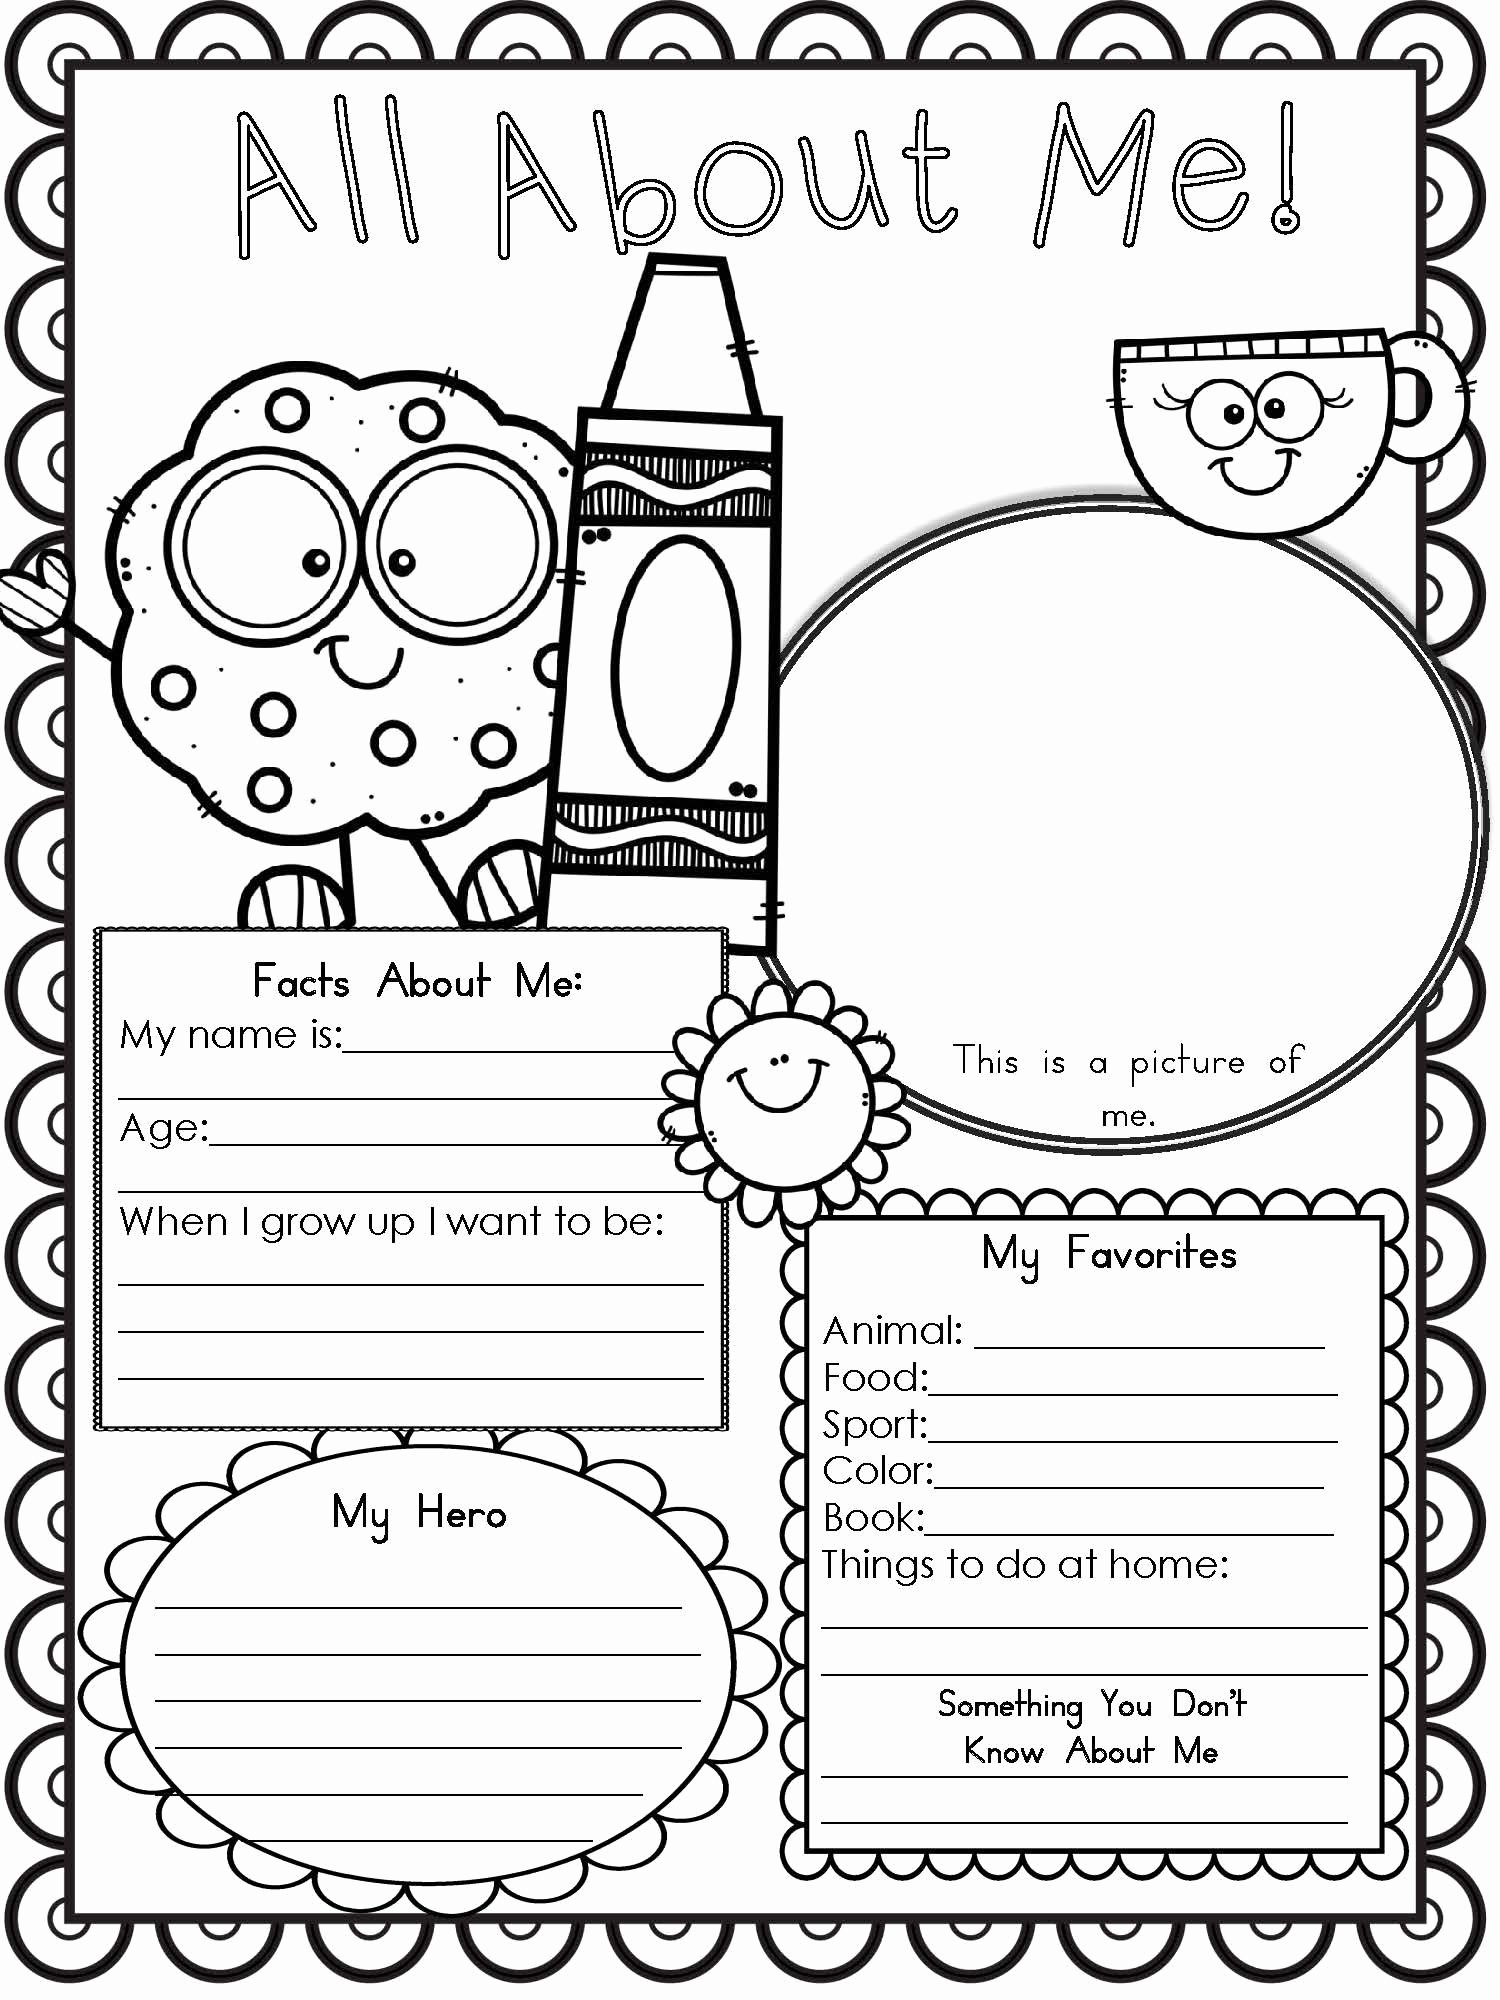 All About Me Printable Worksheets for Preschoolers New Worksheets Free Printable All About Worksheet Writing